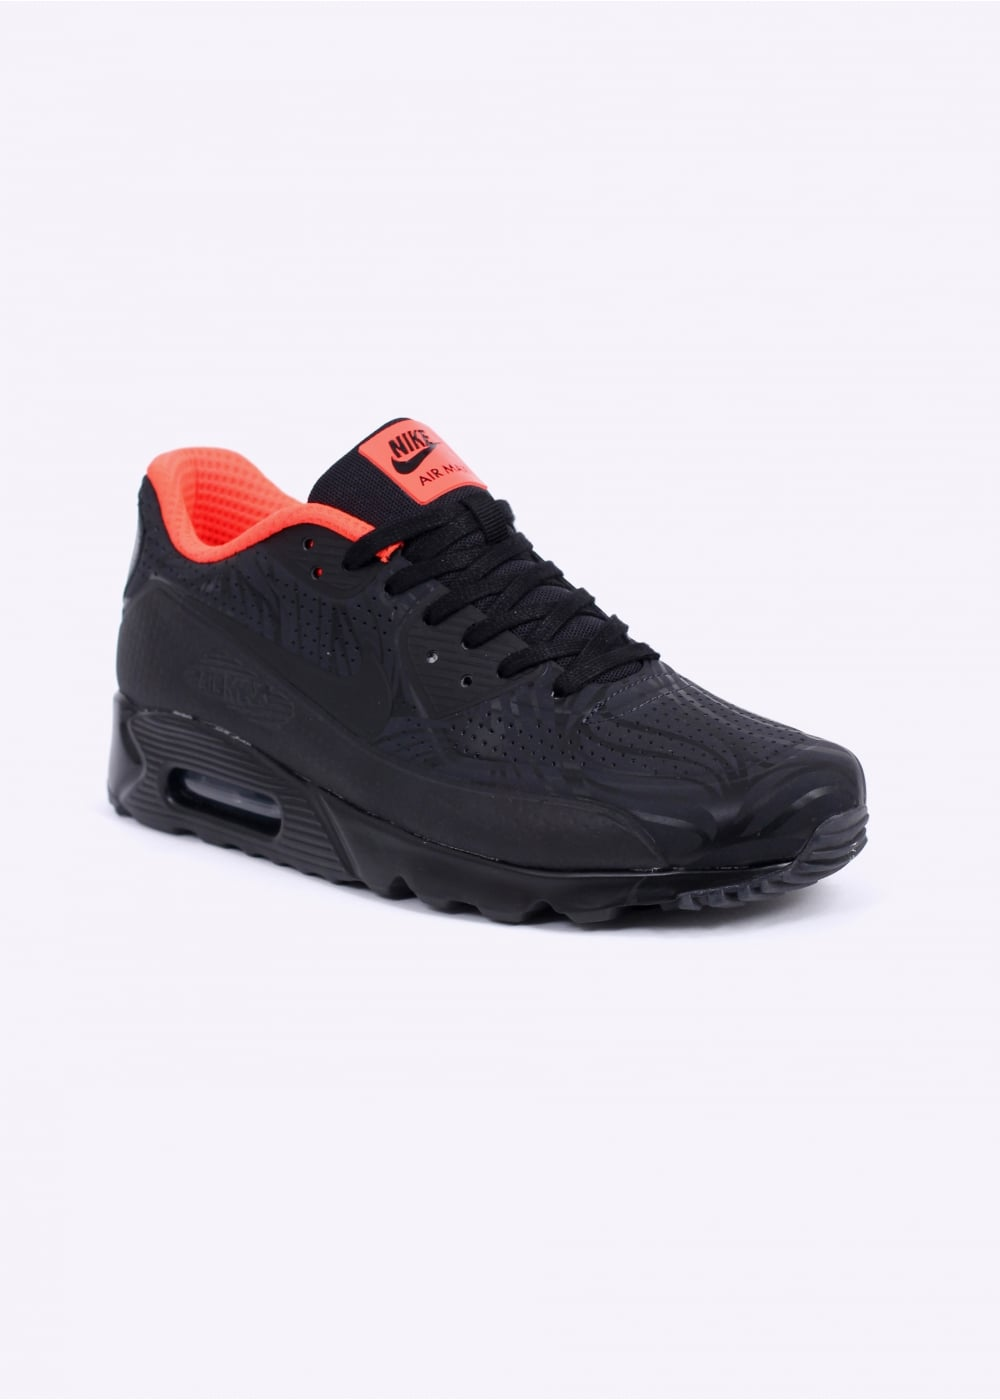 release date 0dadc 3e82b coupon code for nike air max 90 ultra moire fb 344f7 fe3ca  new zealand x neymar  air max 90 ultra trainers black fd2ad 82984